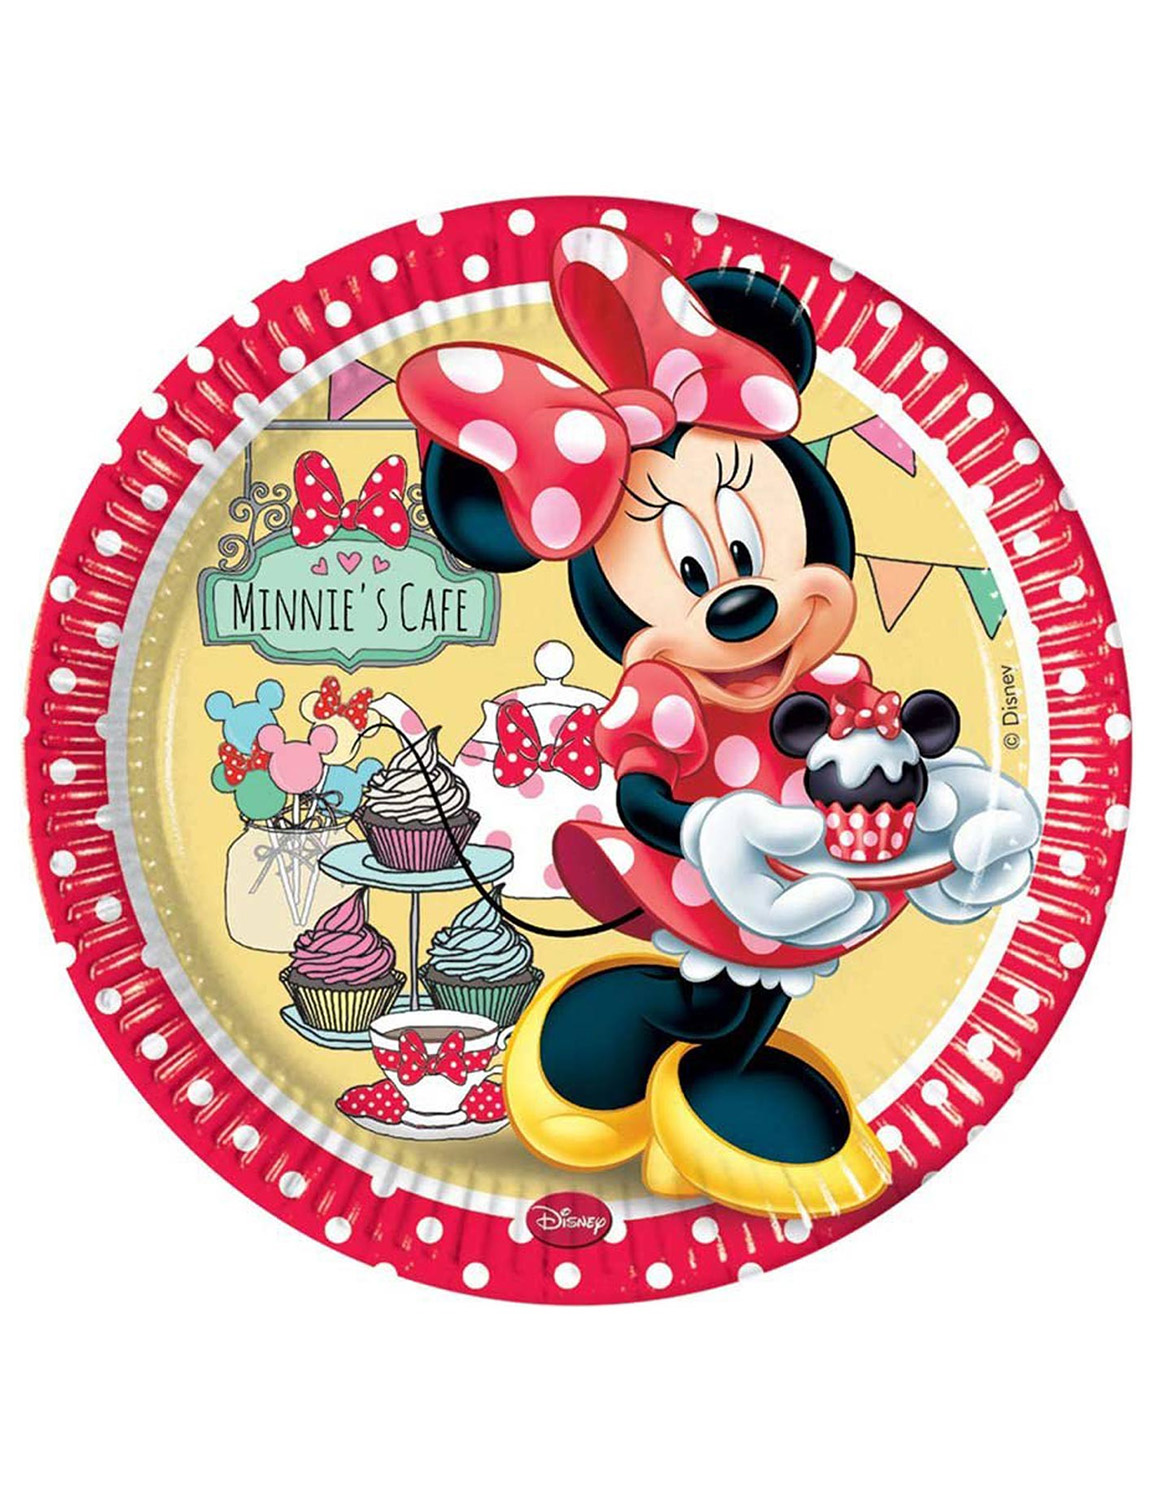 8 assiettes en carton Minnie rouge